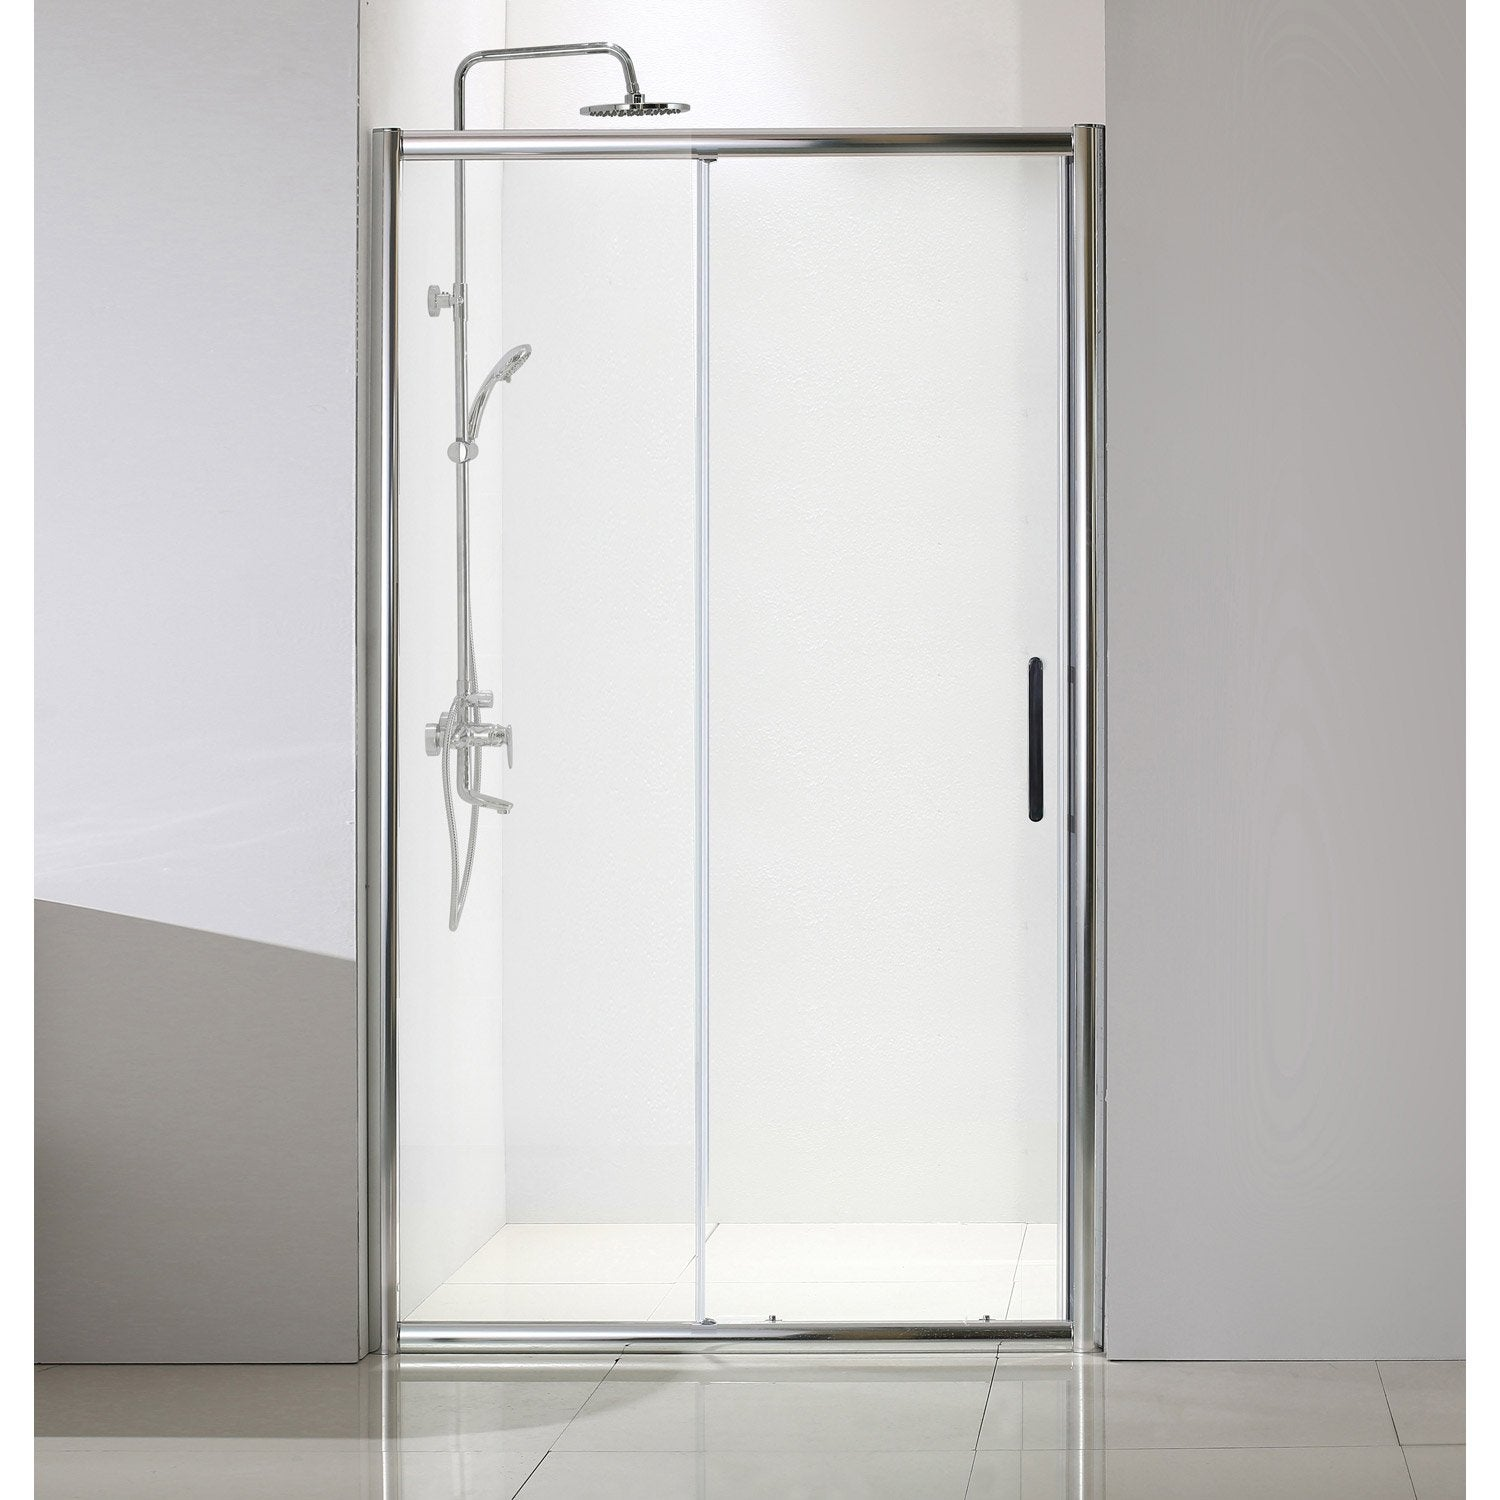 porte de douche coulissante 140 cm transparent quad leroy merlin. Black Bedroom Furniture Sets. Home Design Ideas